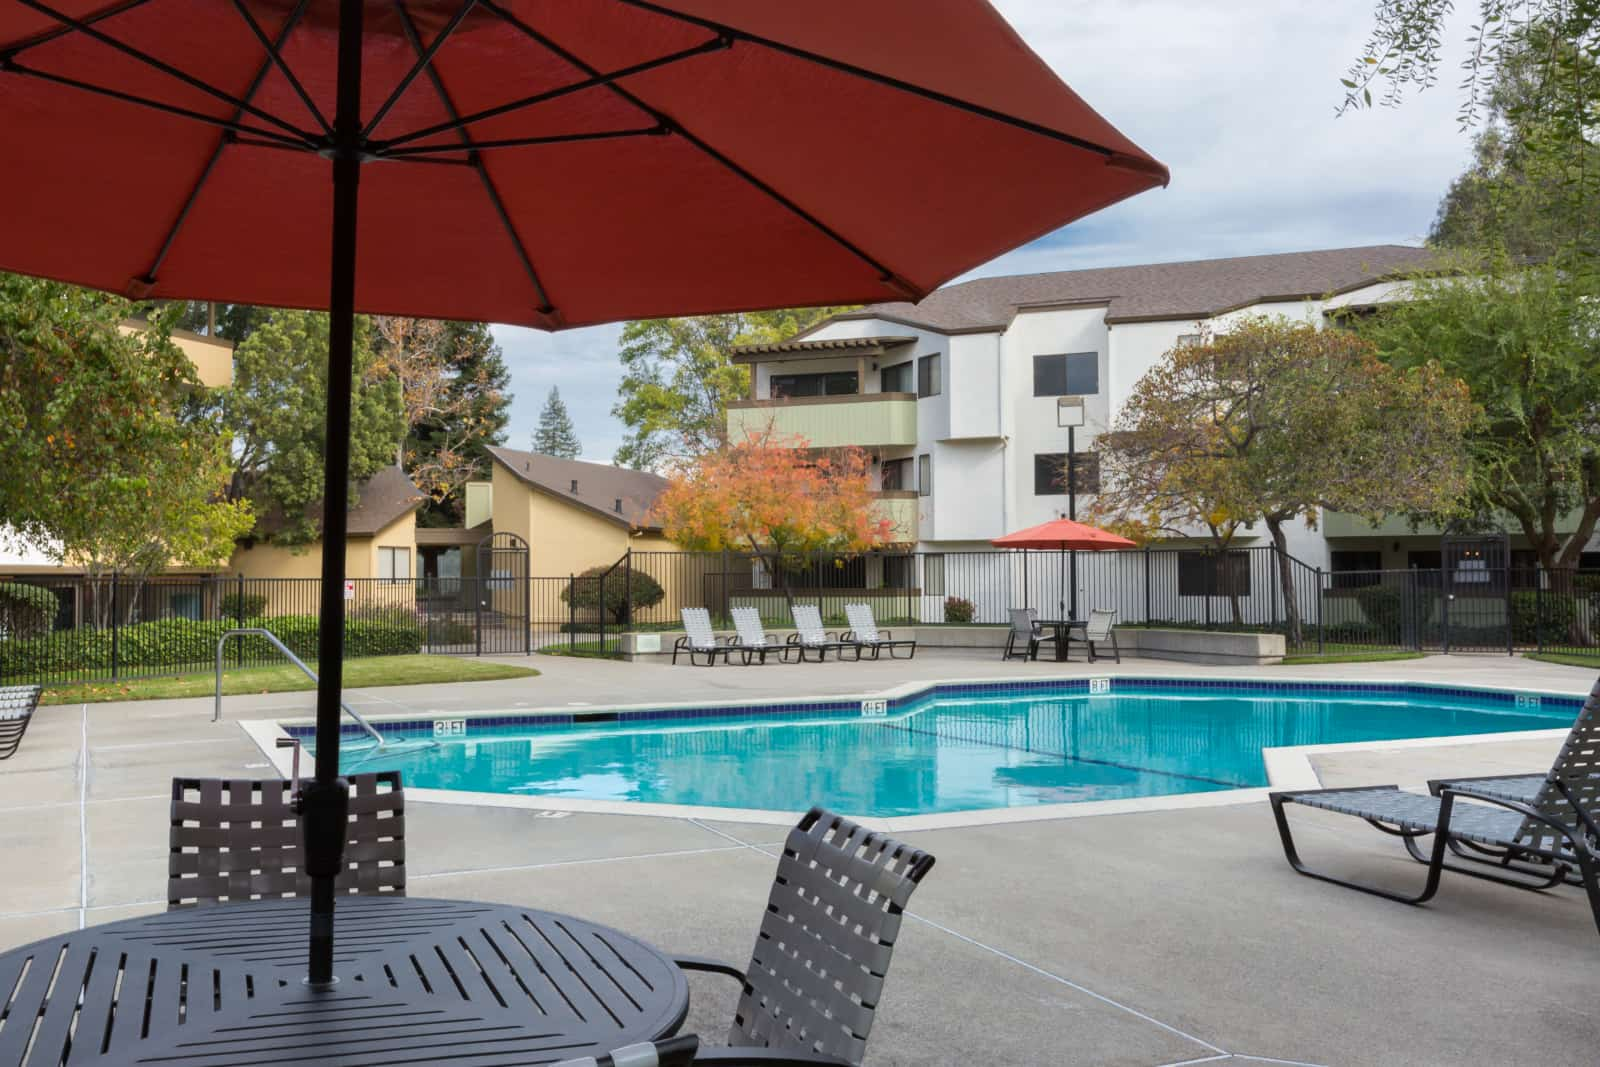 Exterior of pool with table and umbrella in foreground with 3-story apartment buildings in back ground.